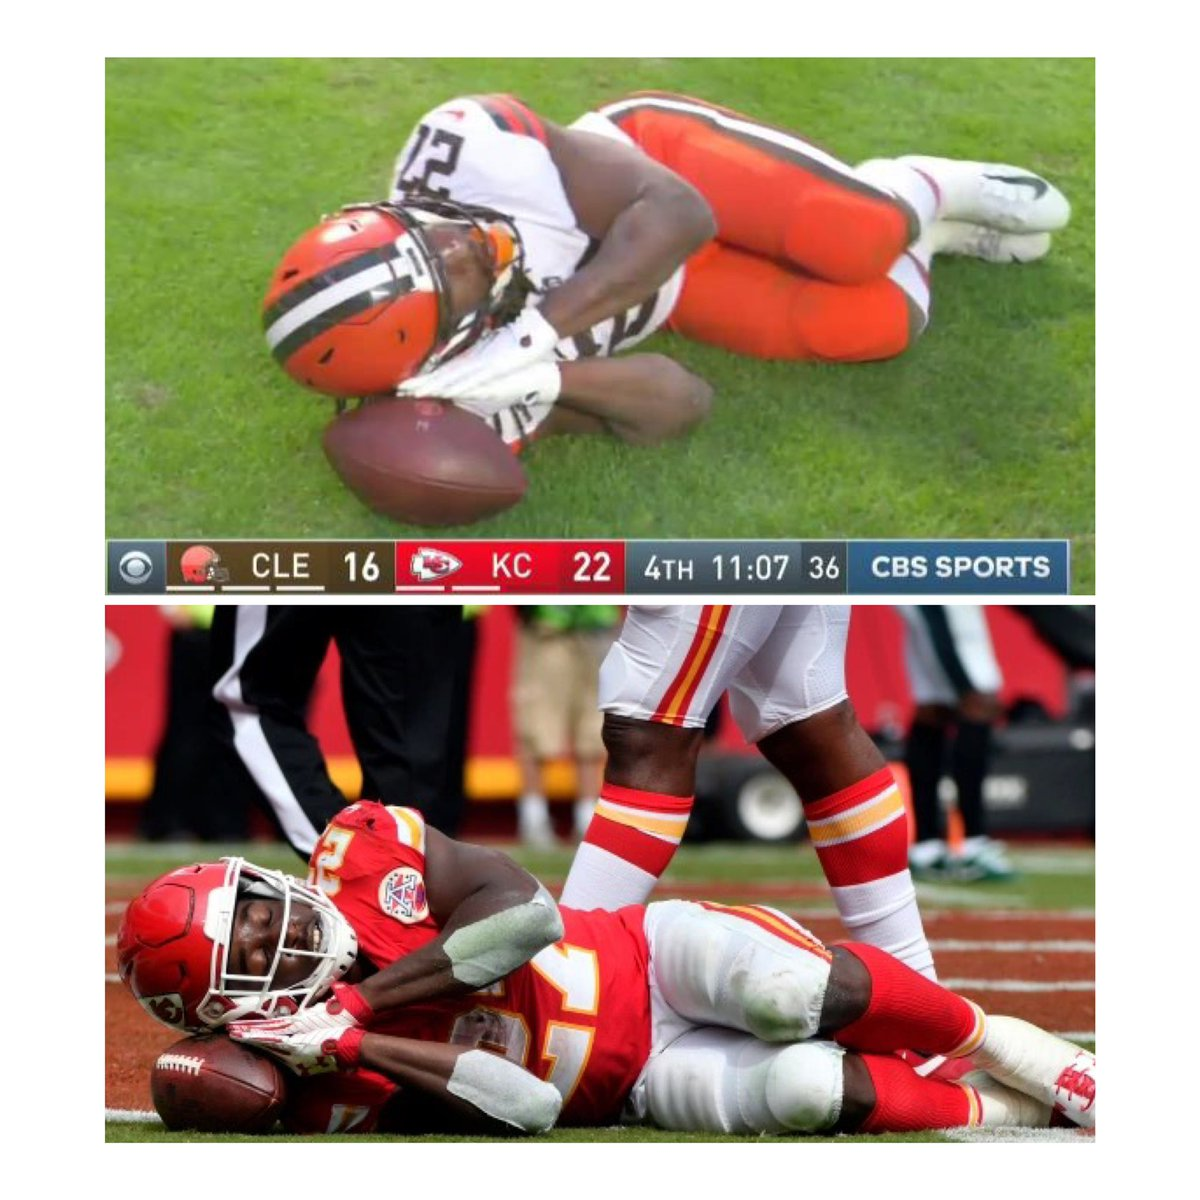 """Kareem Hunt """"Stop sleeping on me"""" 2021 vs 2017. I knew this looked familiar. #CLEvsKC #chiefs #browns"""